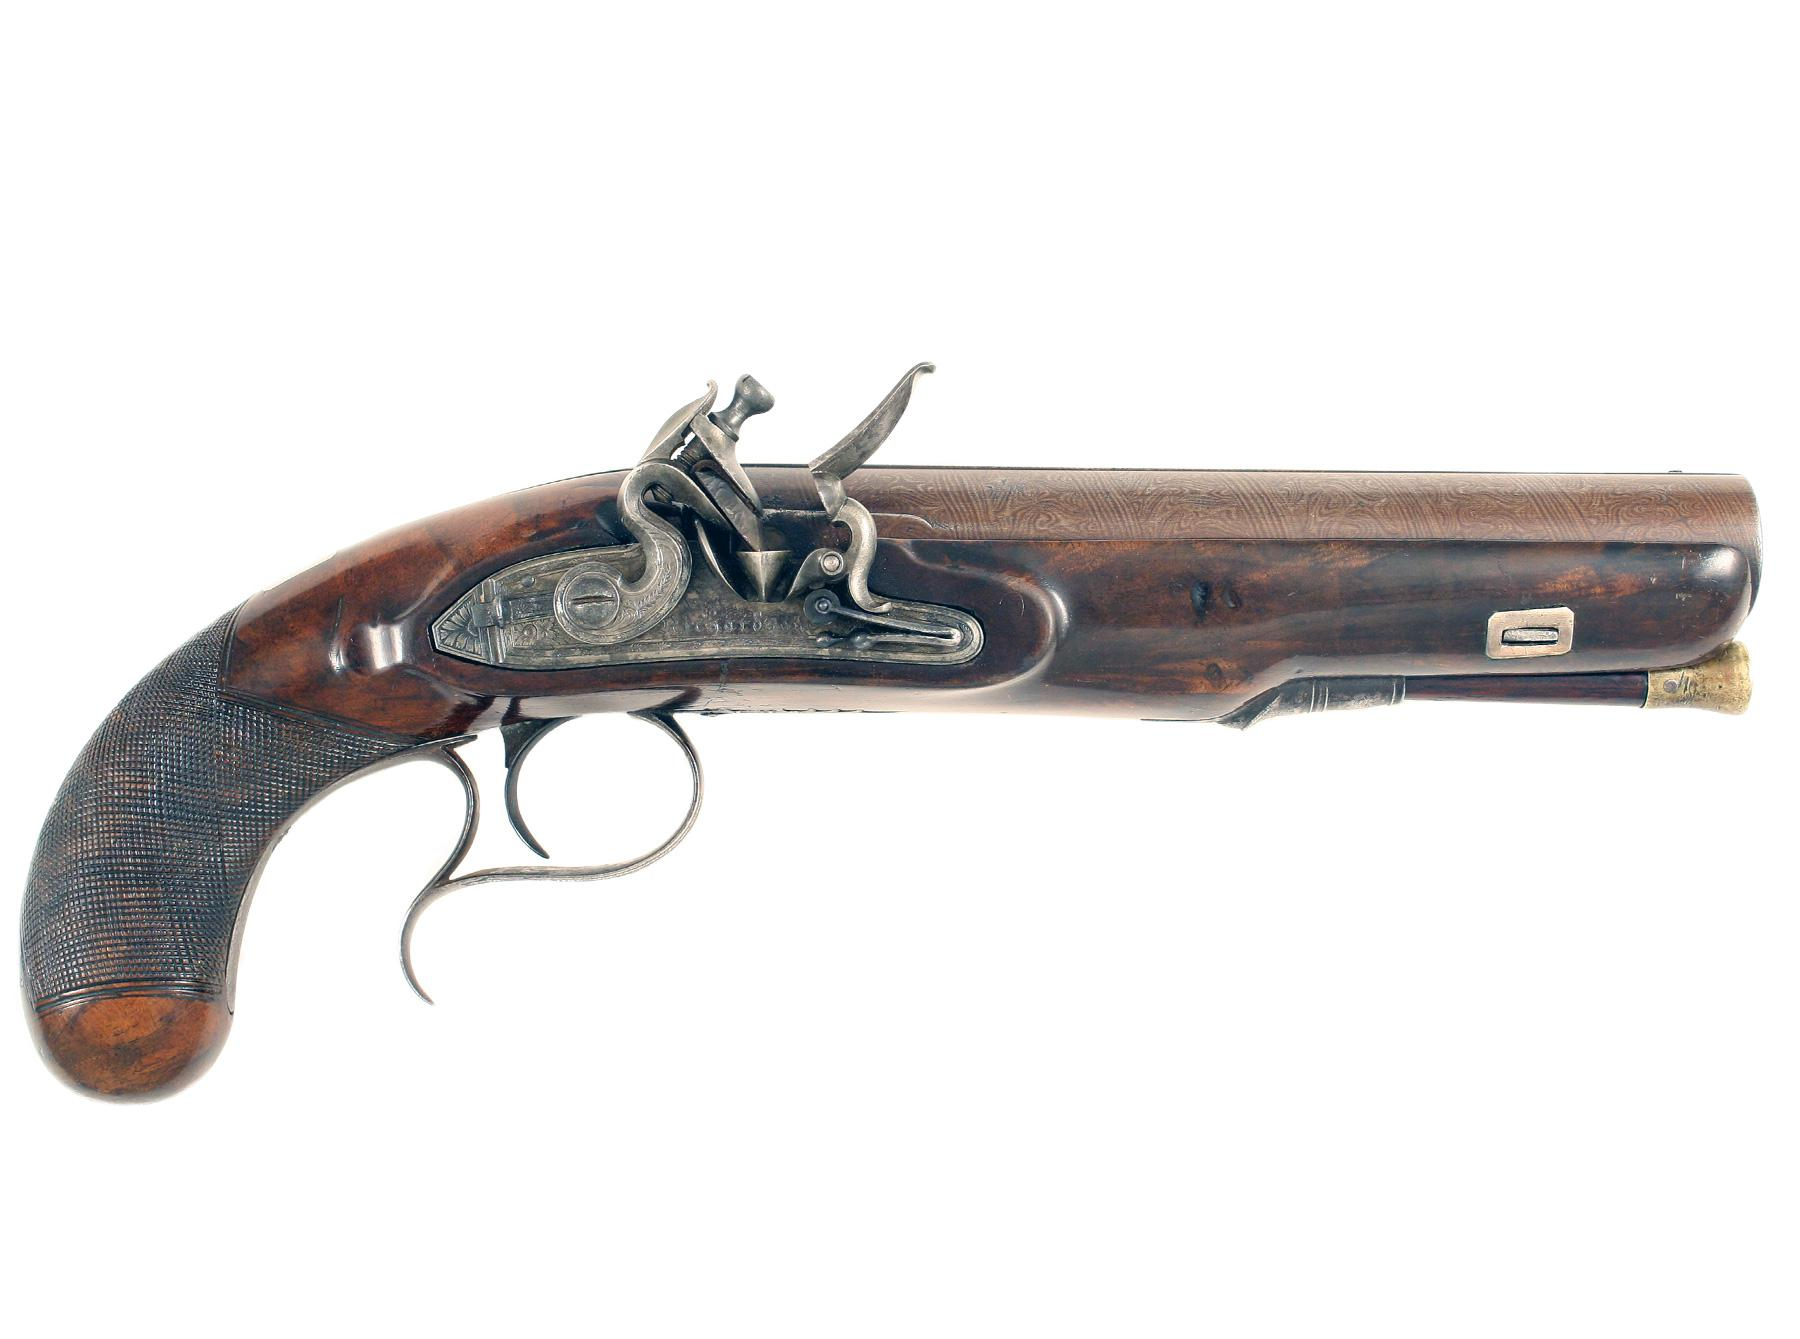 A Large Bore Flintlock Officers Pistol